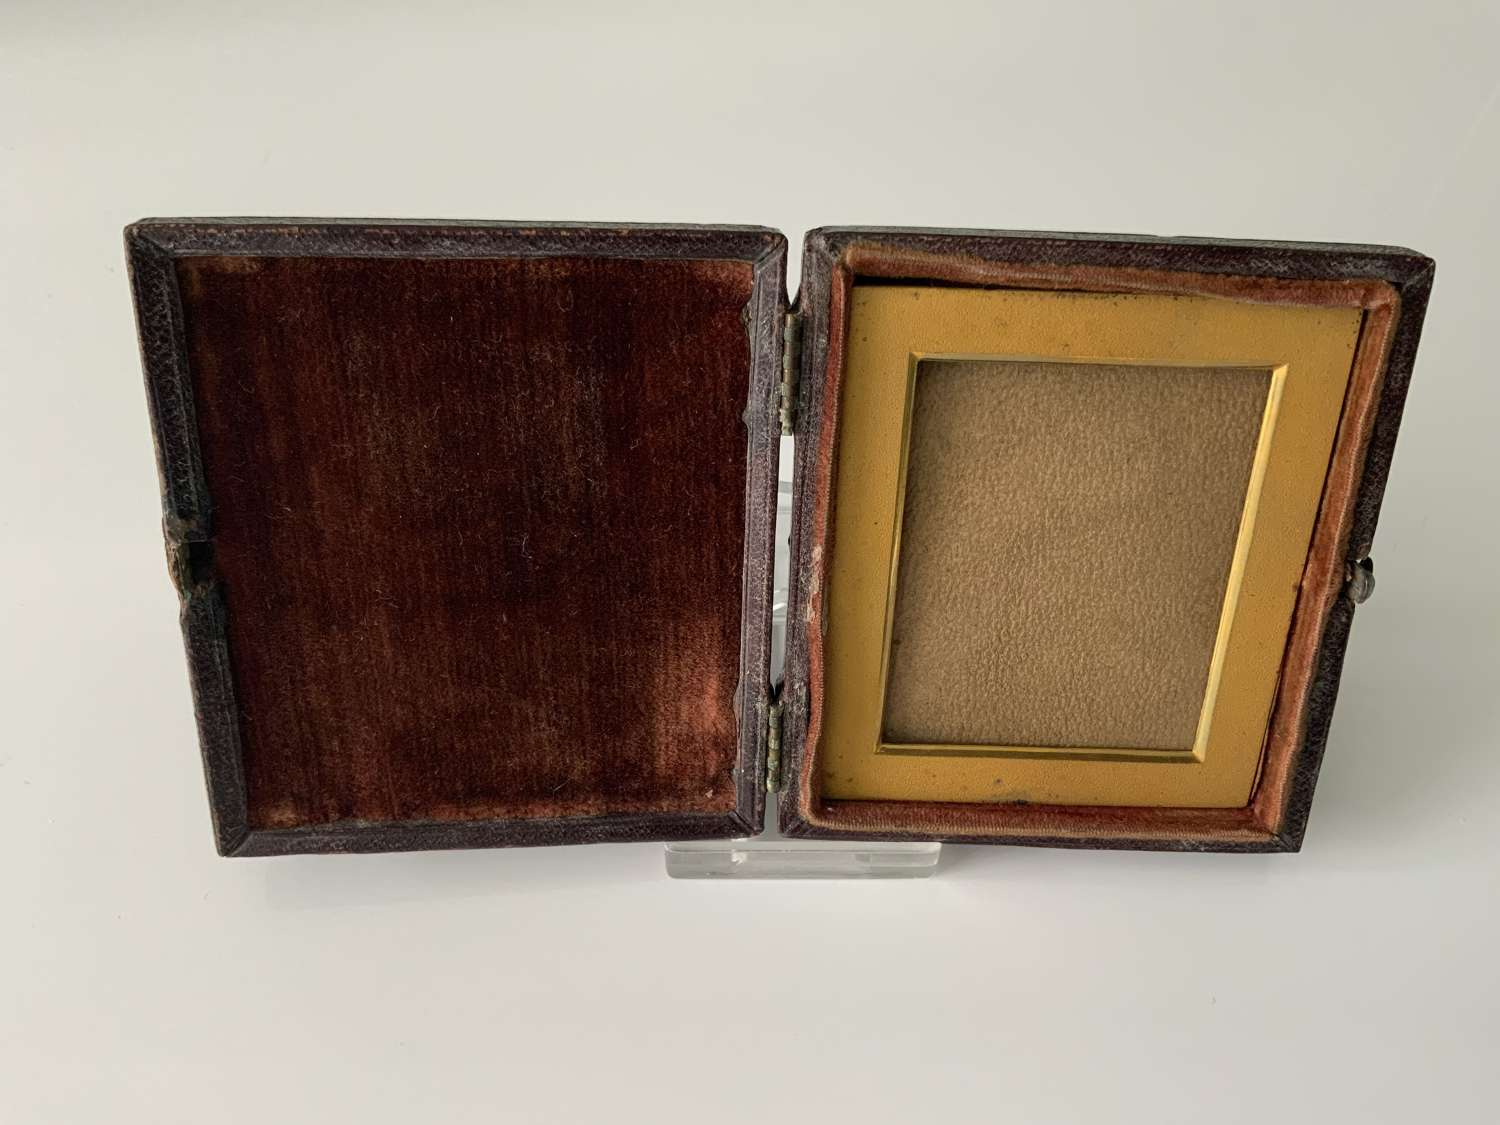 Travelling picture photograph frame